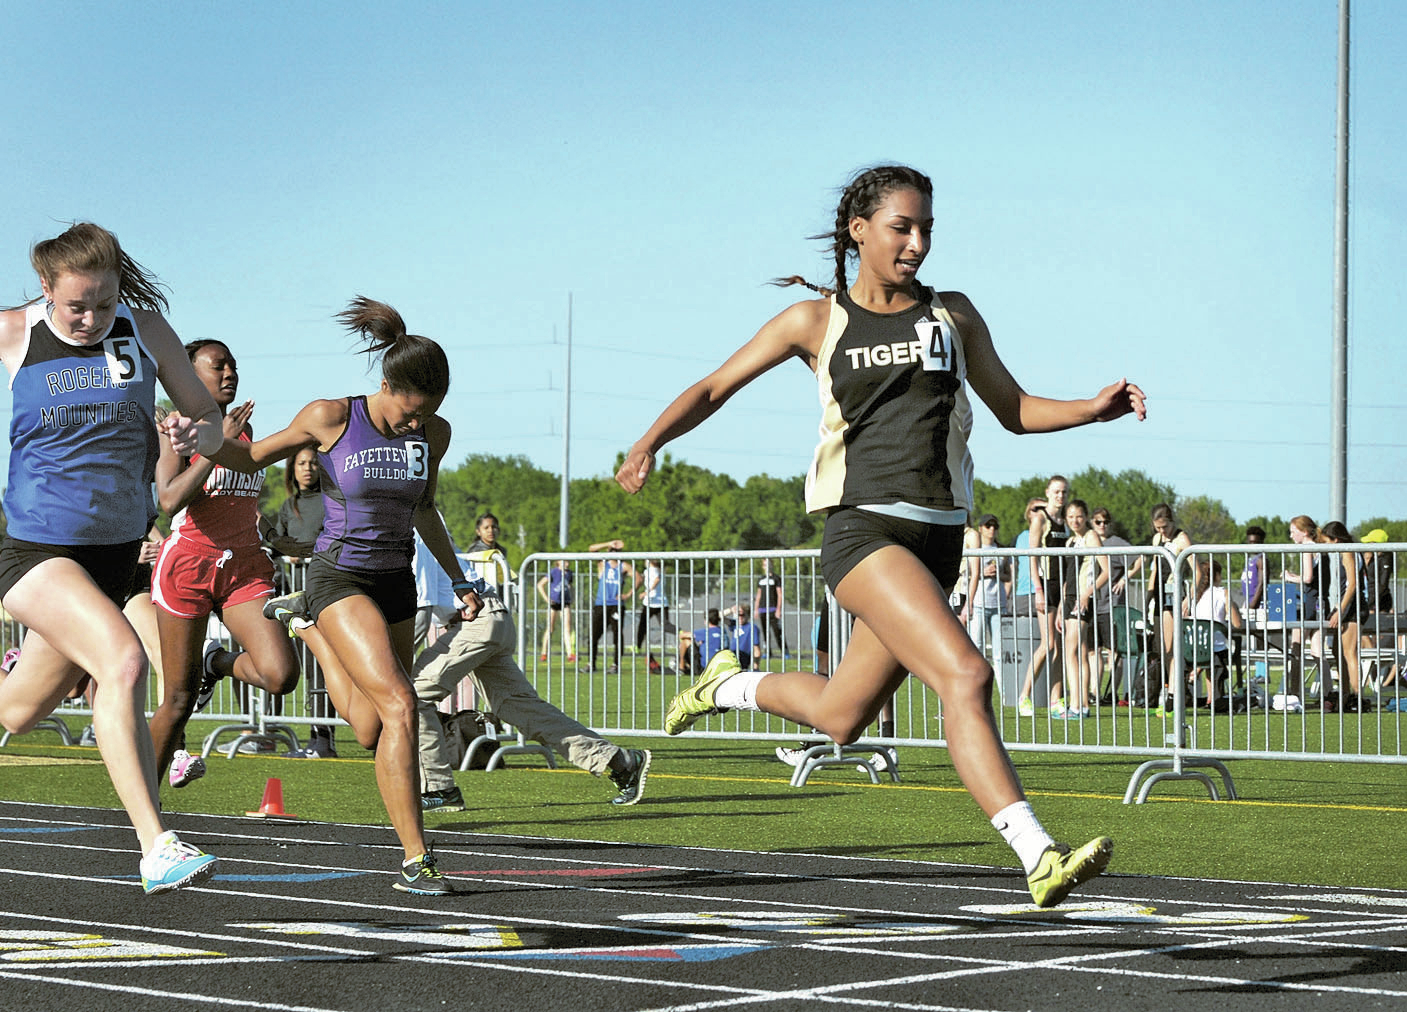 Bentonville S Neal Skies To Lone Meet Record